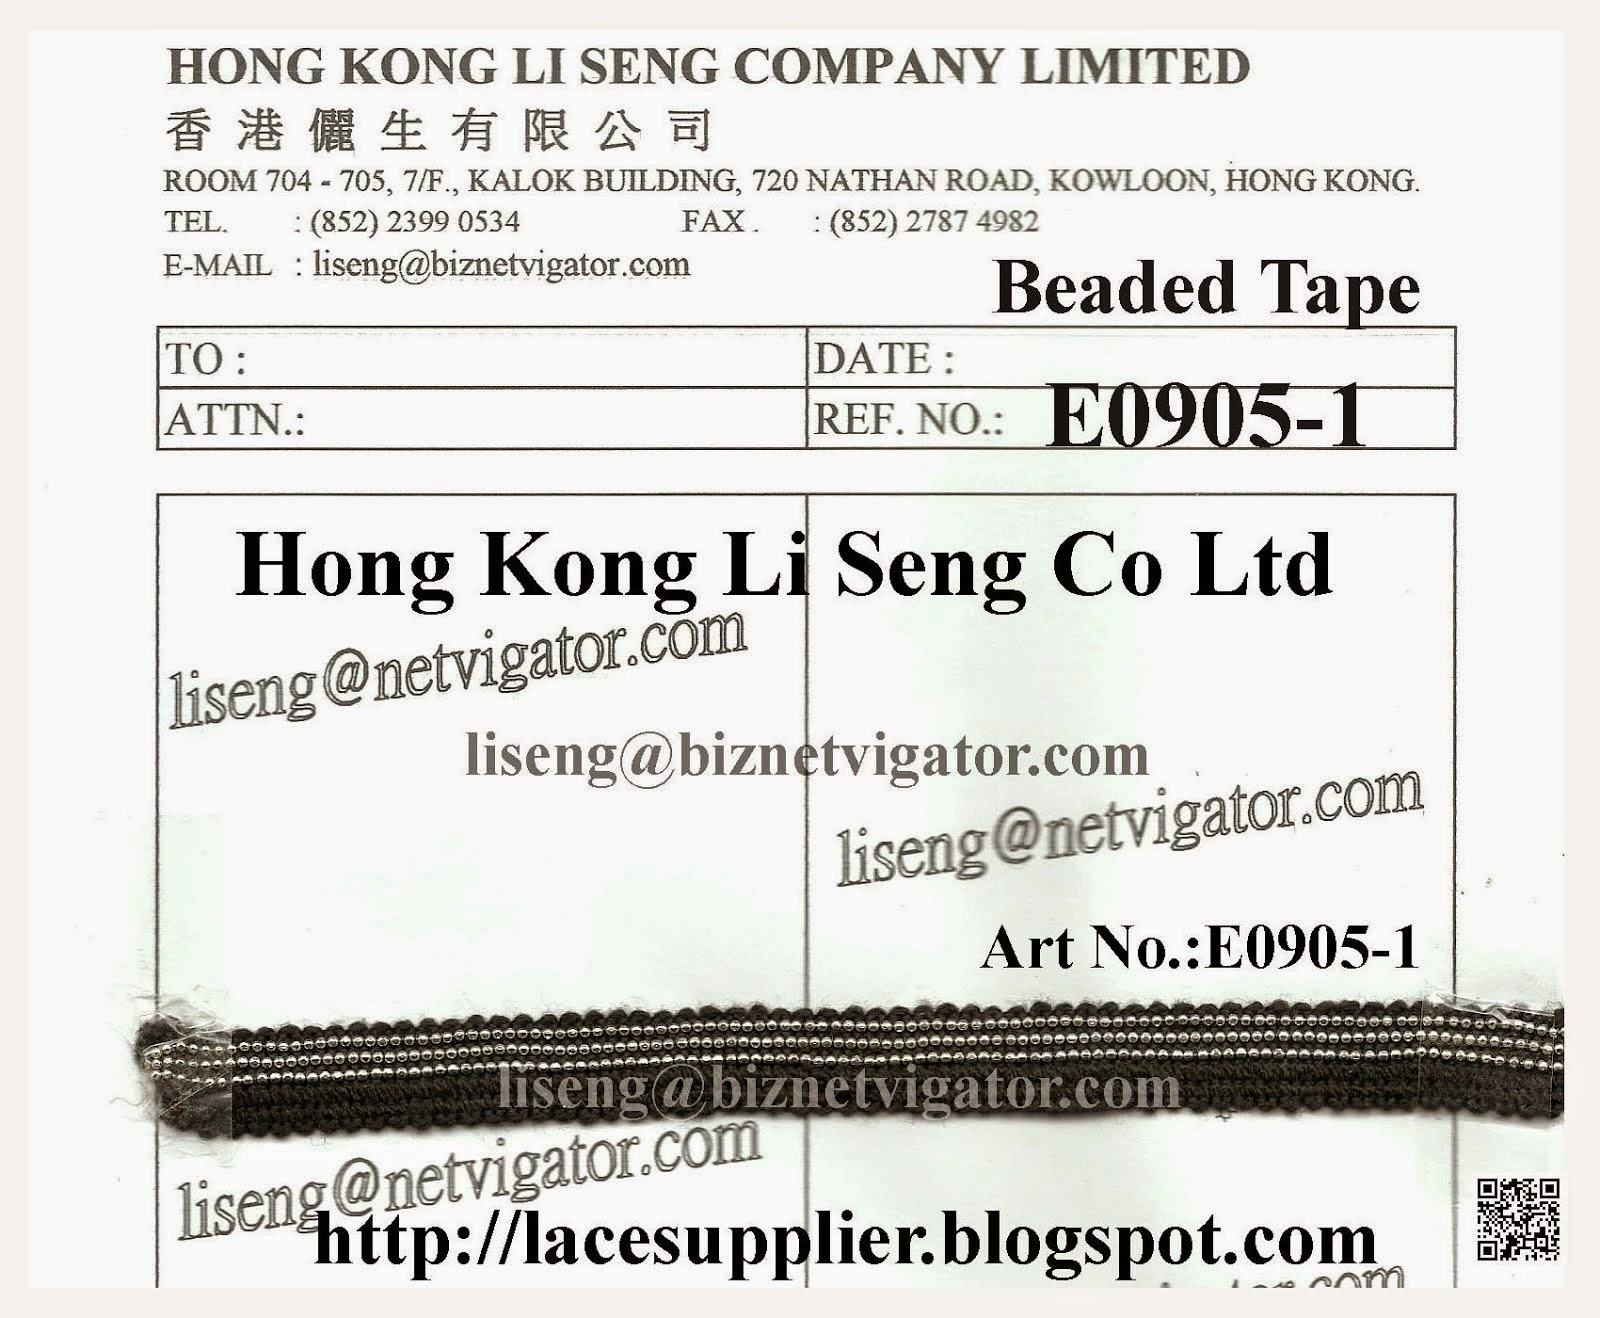 Beaded Tape Manufacturer Wholesaler Supplier - Hong Kong Li Seng Co Ltd